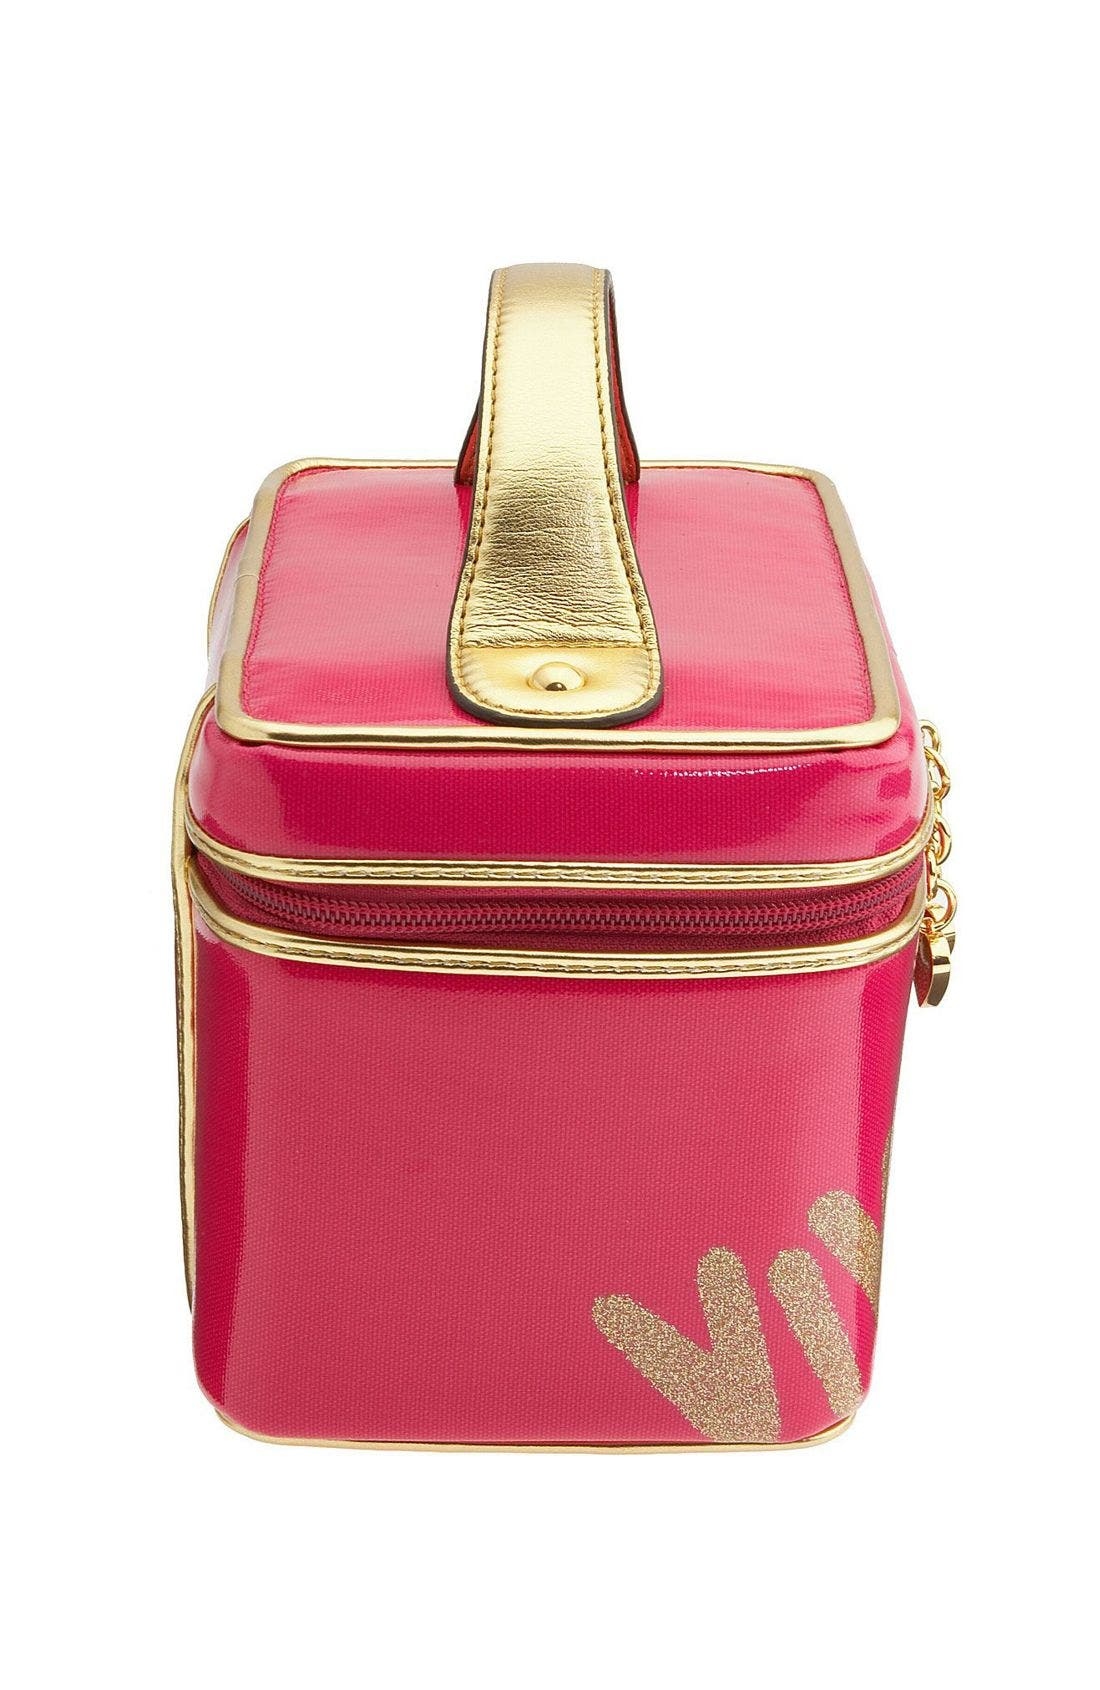 'Viva la Juicy' Cosmetics Case,                             Alternate thumbnail 3, color,                             659